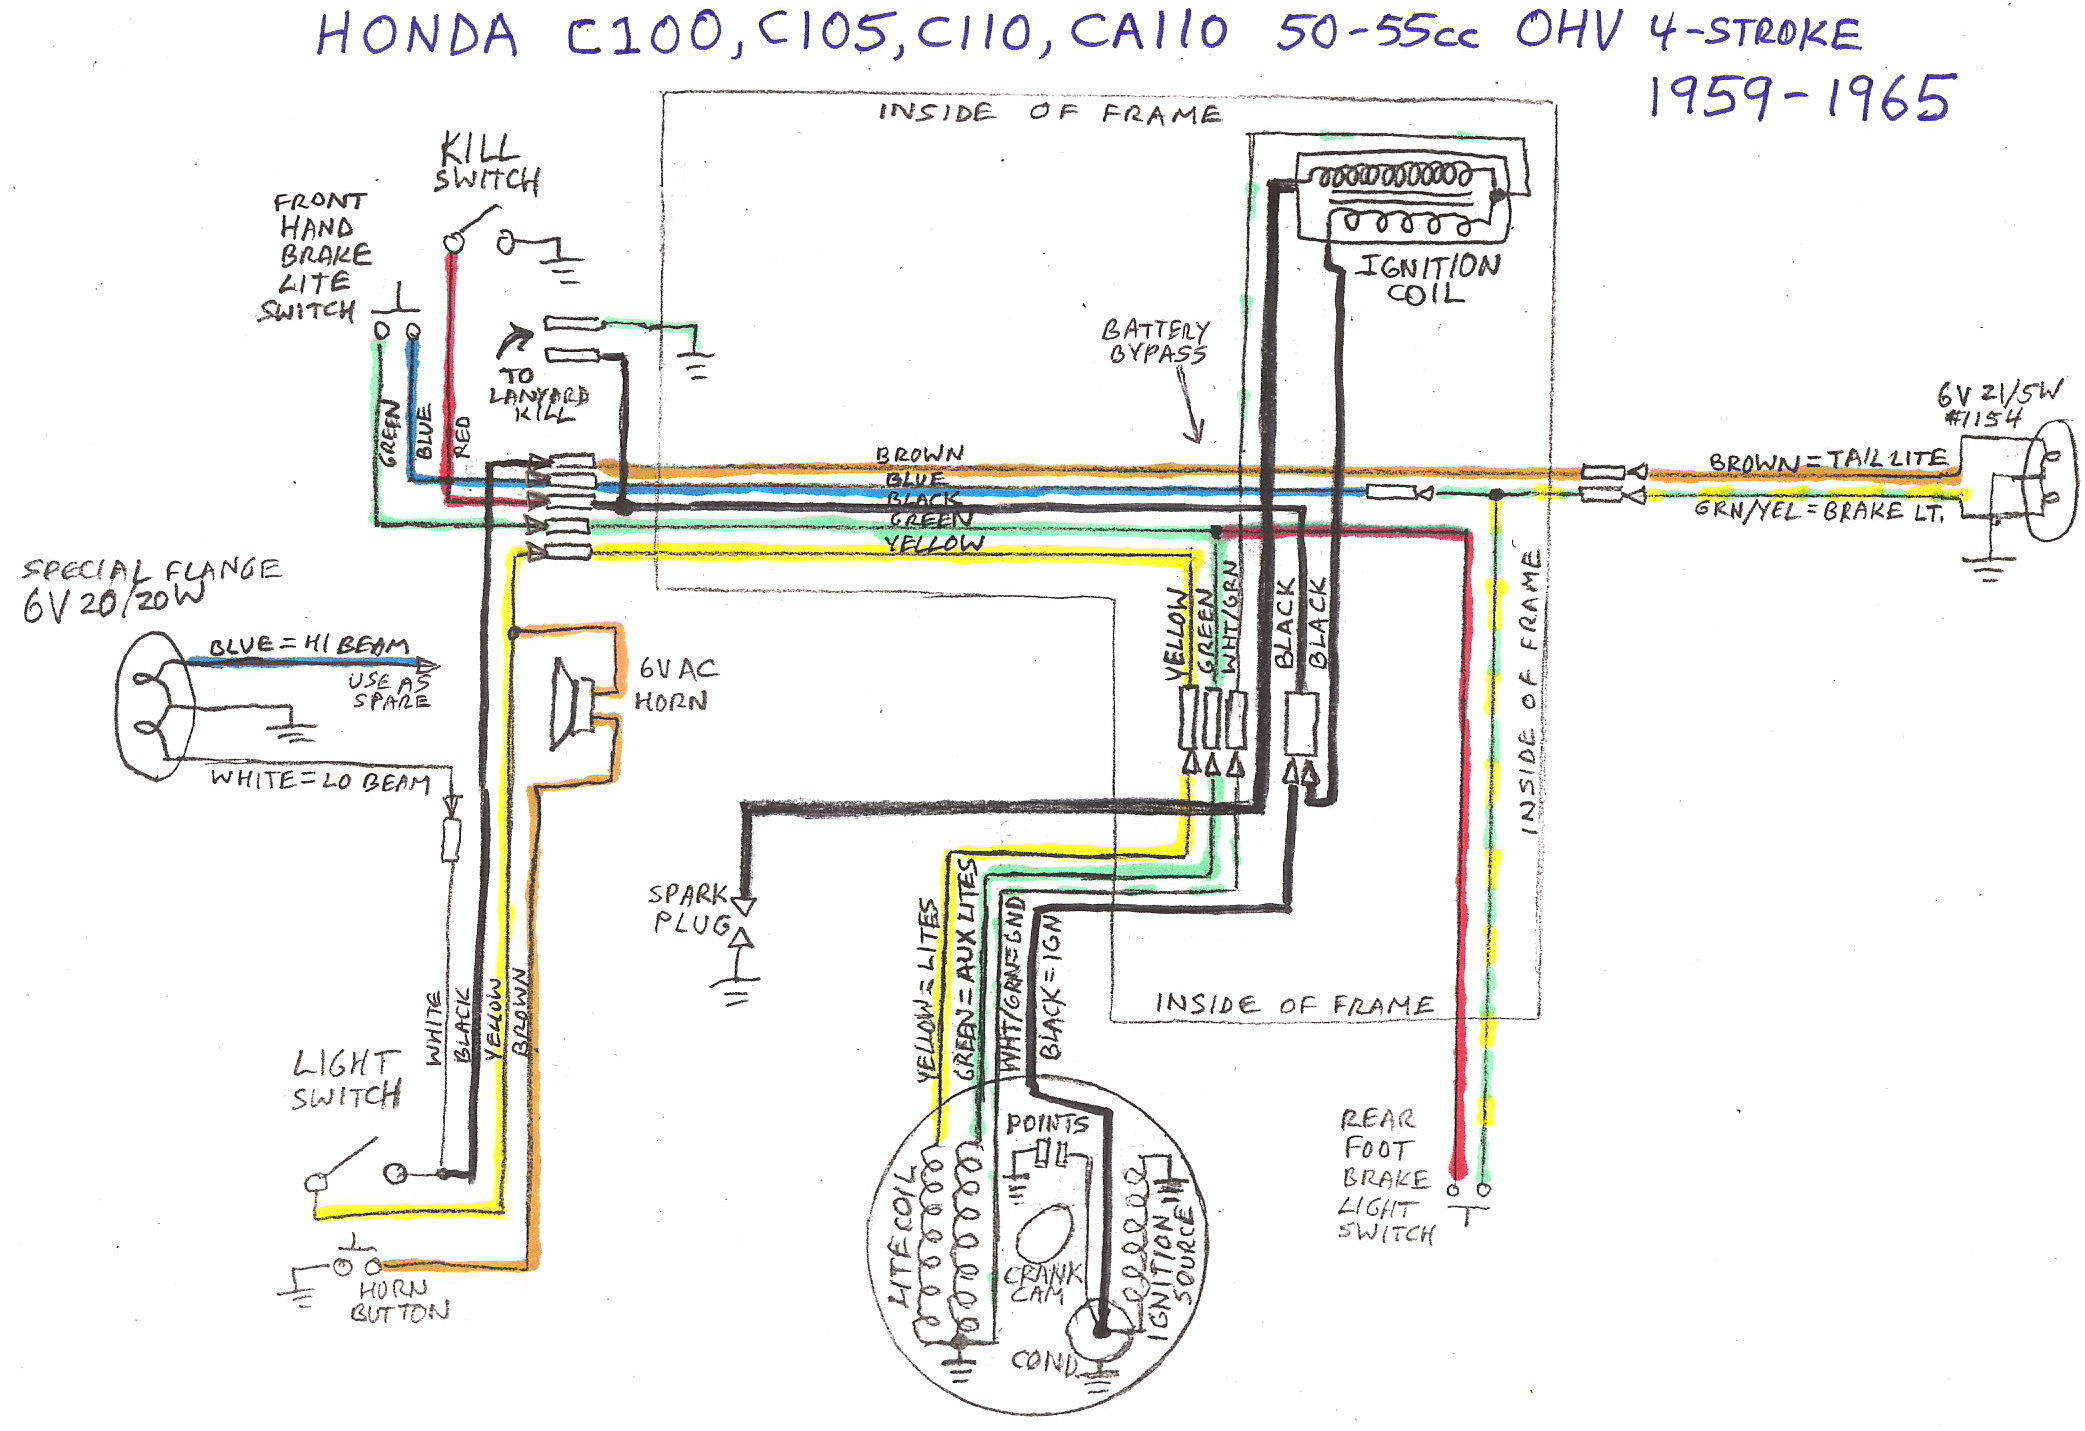 honda cl70 wiring diagram 110cc atv wiring diagram wiring